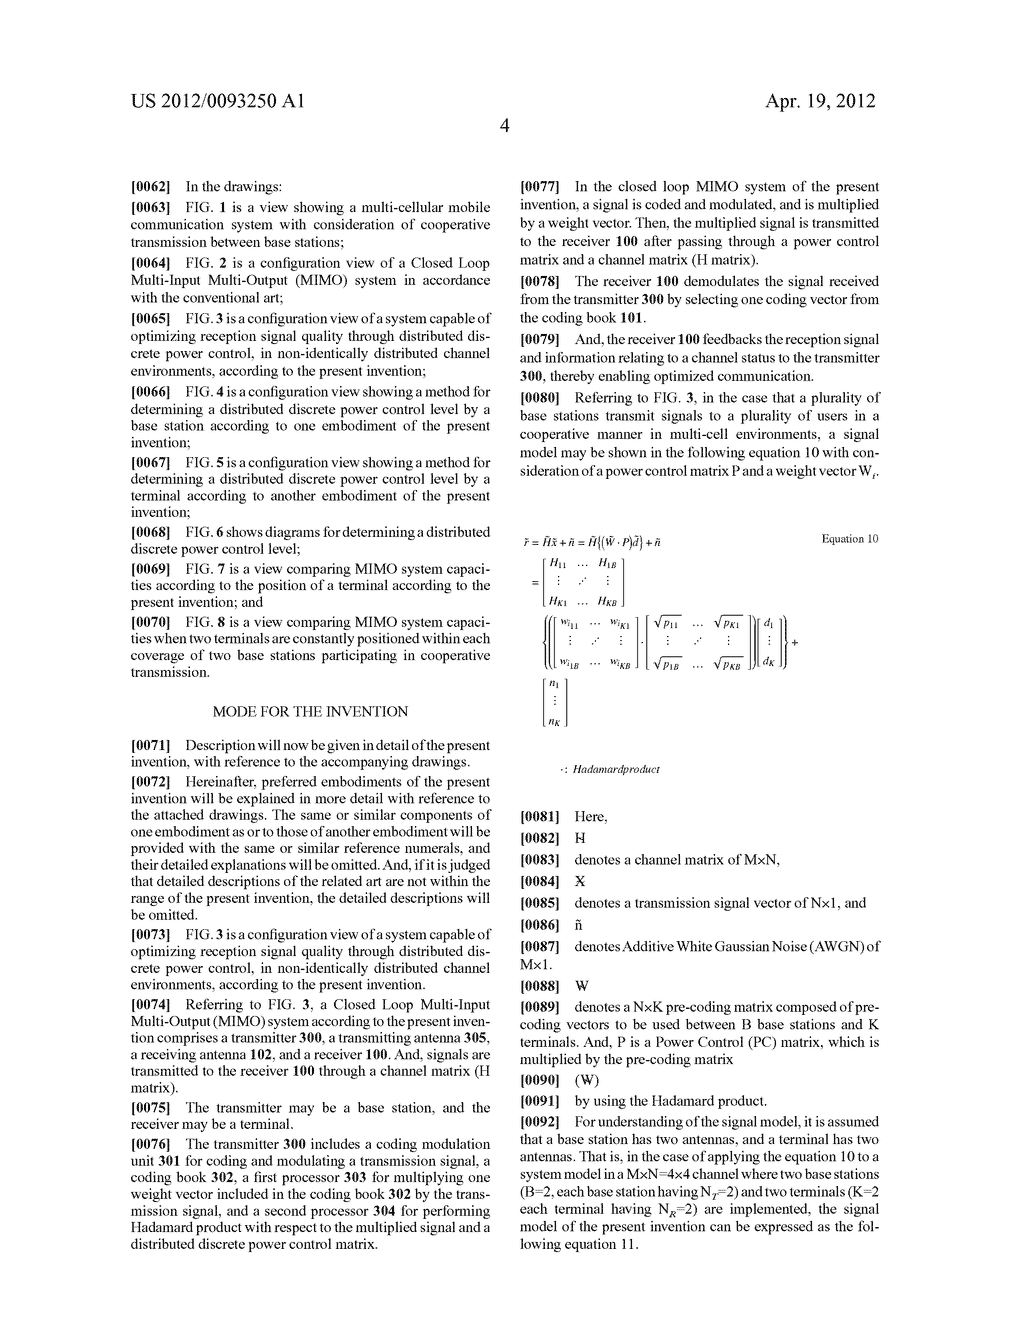 METHOD AND APPARATUS FOR DATA TRANSMISSION BASED ON DISTRIBUTED DISCRETE     POWER CONTROL IN COOPERATIVE MULTI-USER MULTI-INPUT MULTI-OUTPUT SYSTEM - diagram, schematic, and image 09